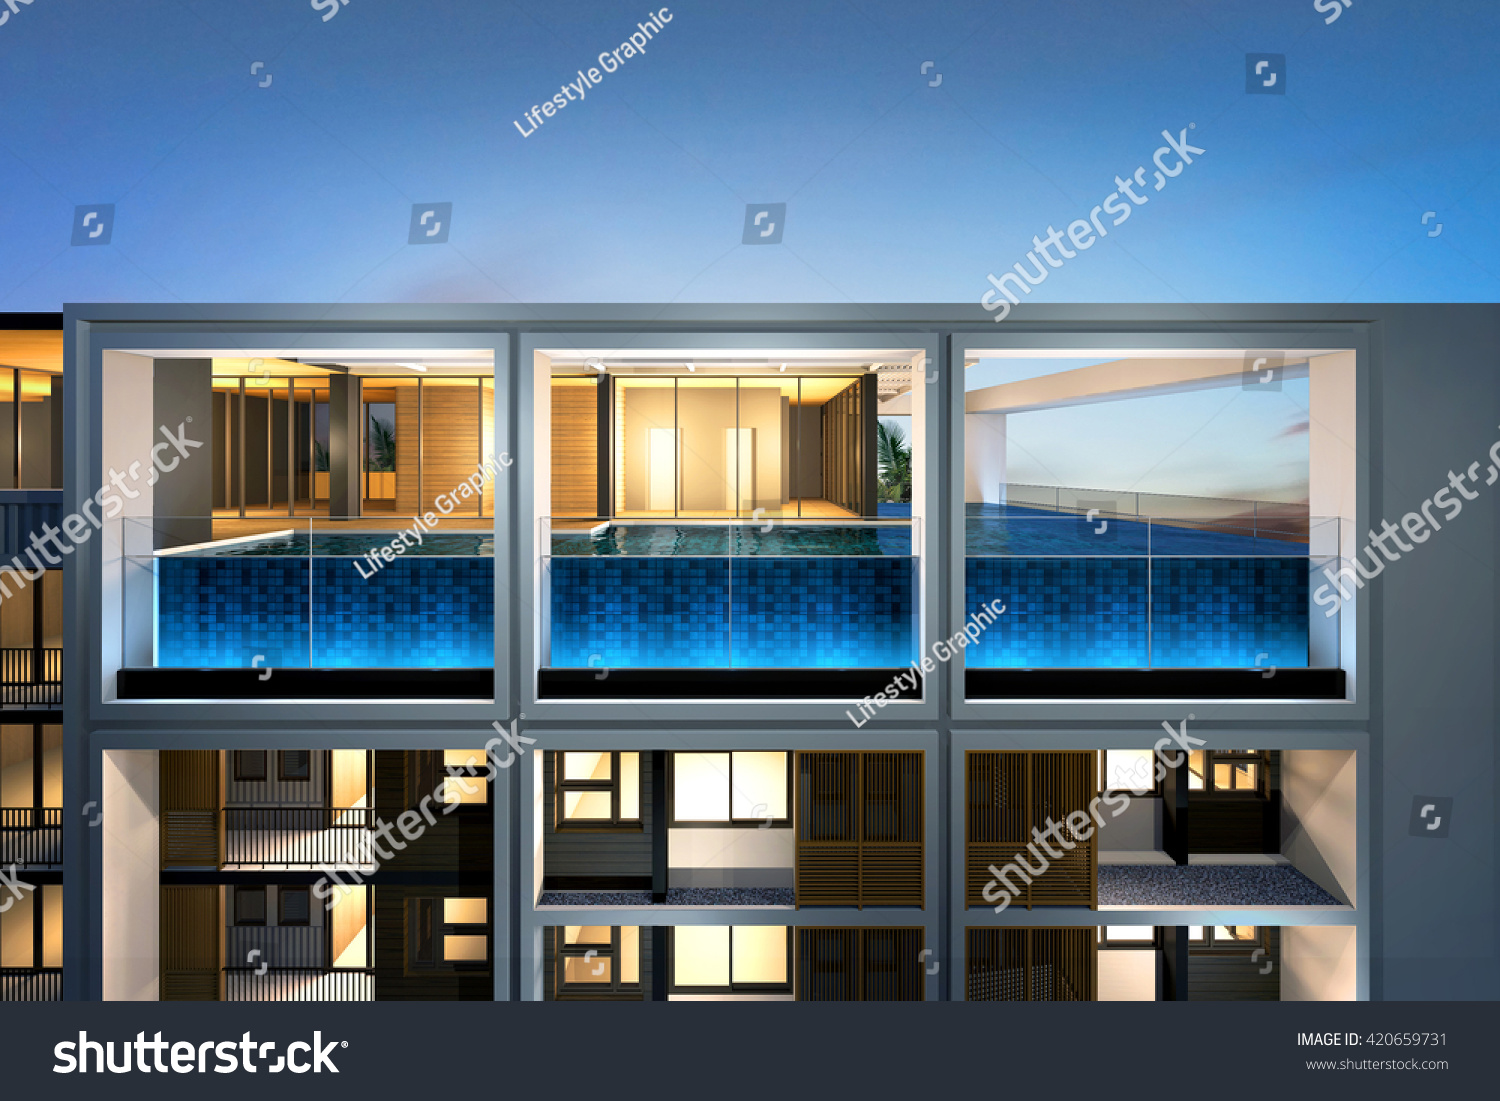 3 D Night Perspective Swimming Pool On Stock Illustration 420659731 Schematic 3d Of Top Building Image Architectural Construction